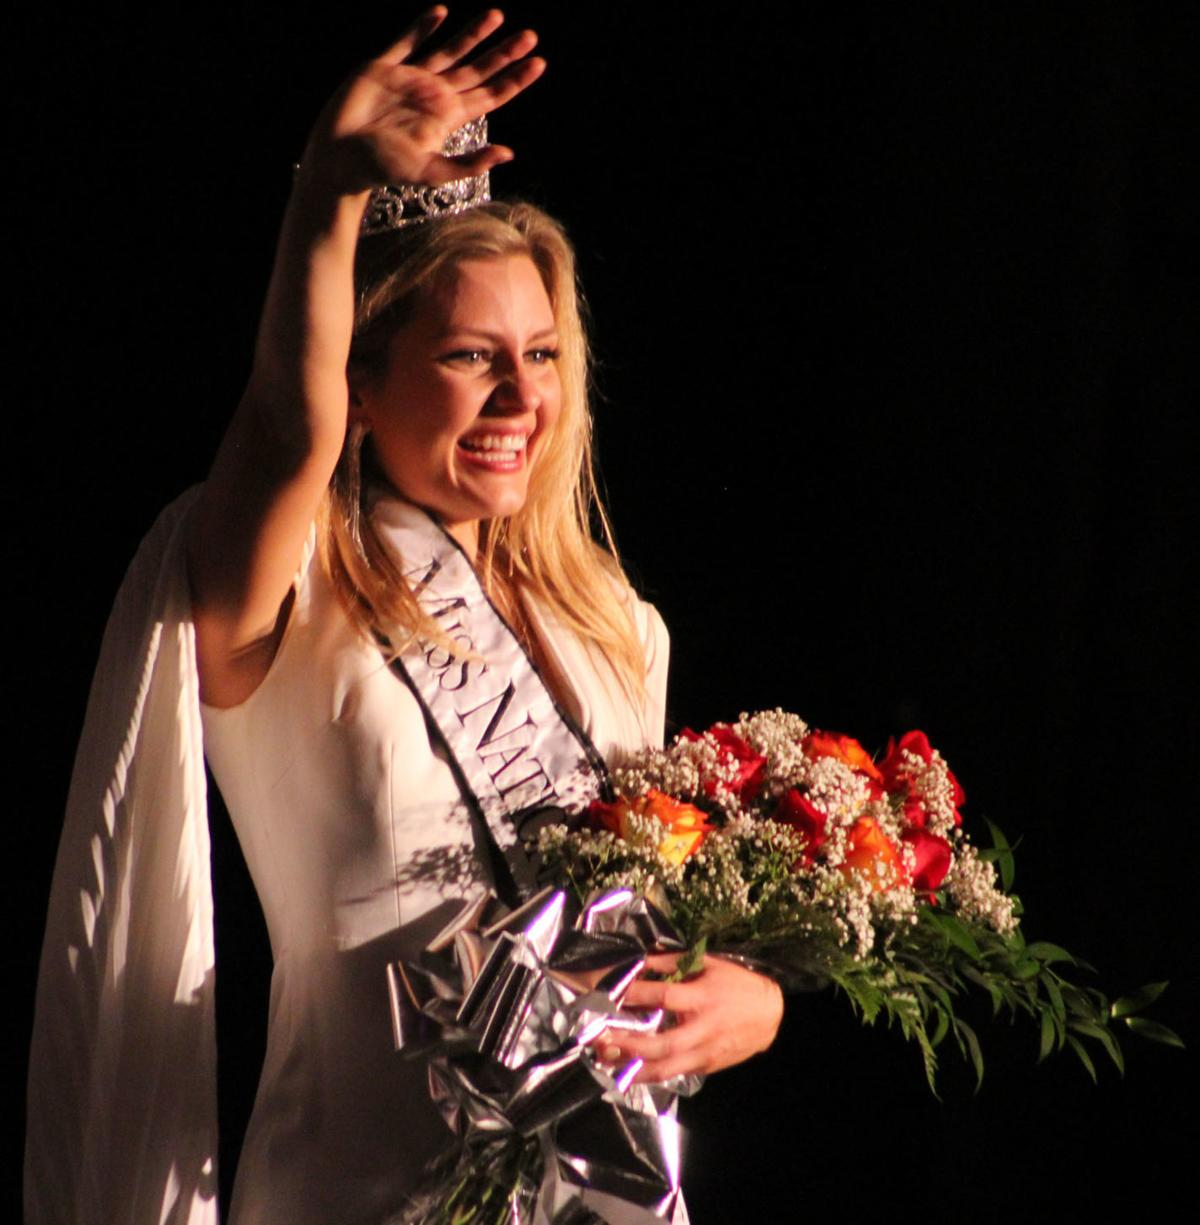 California Sweetheart wins National Sweetheart Pageant